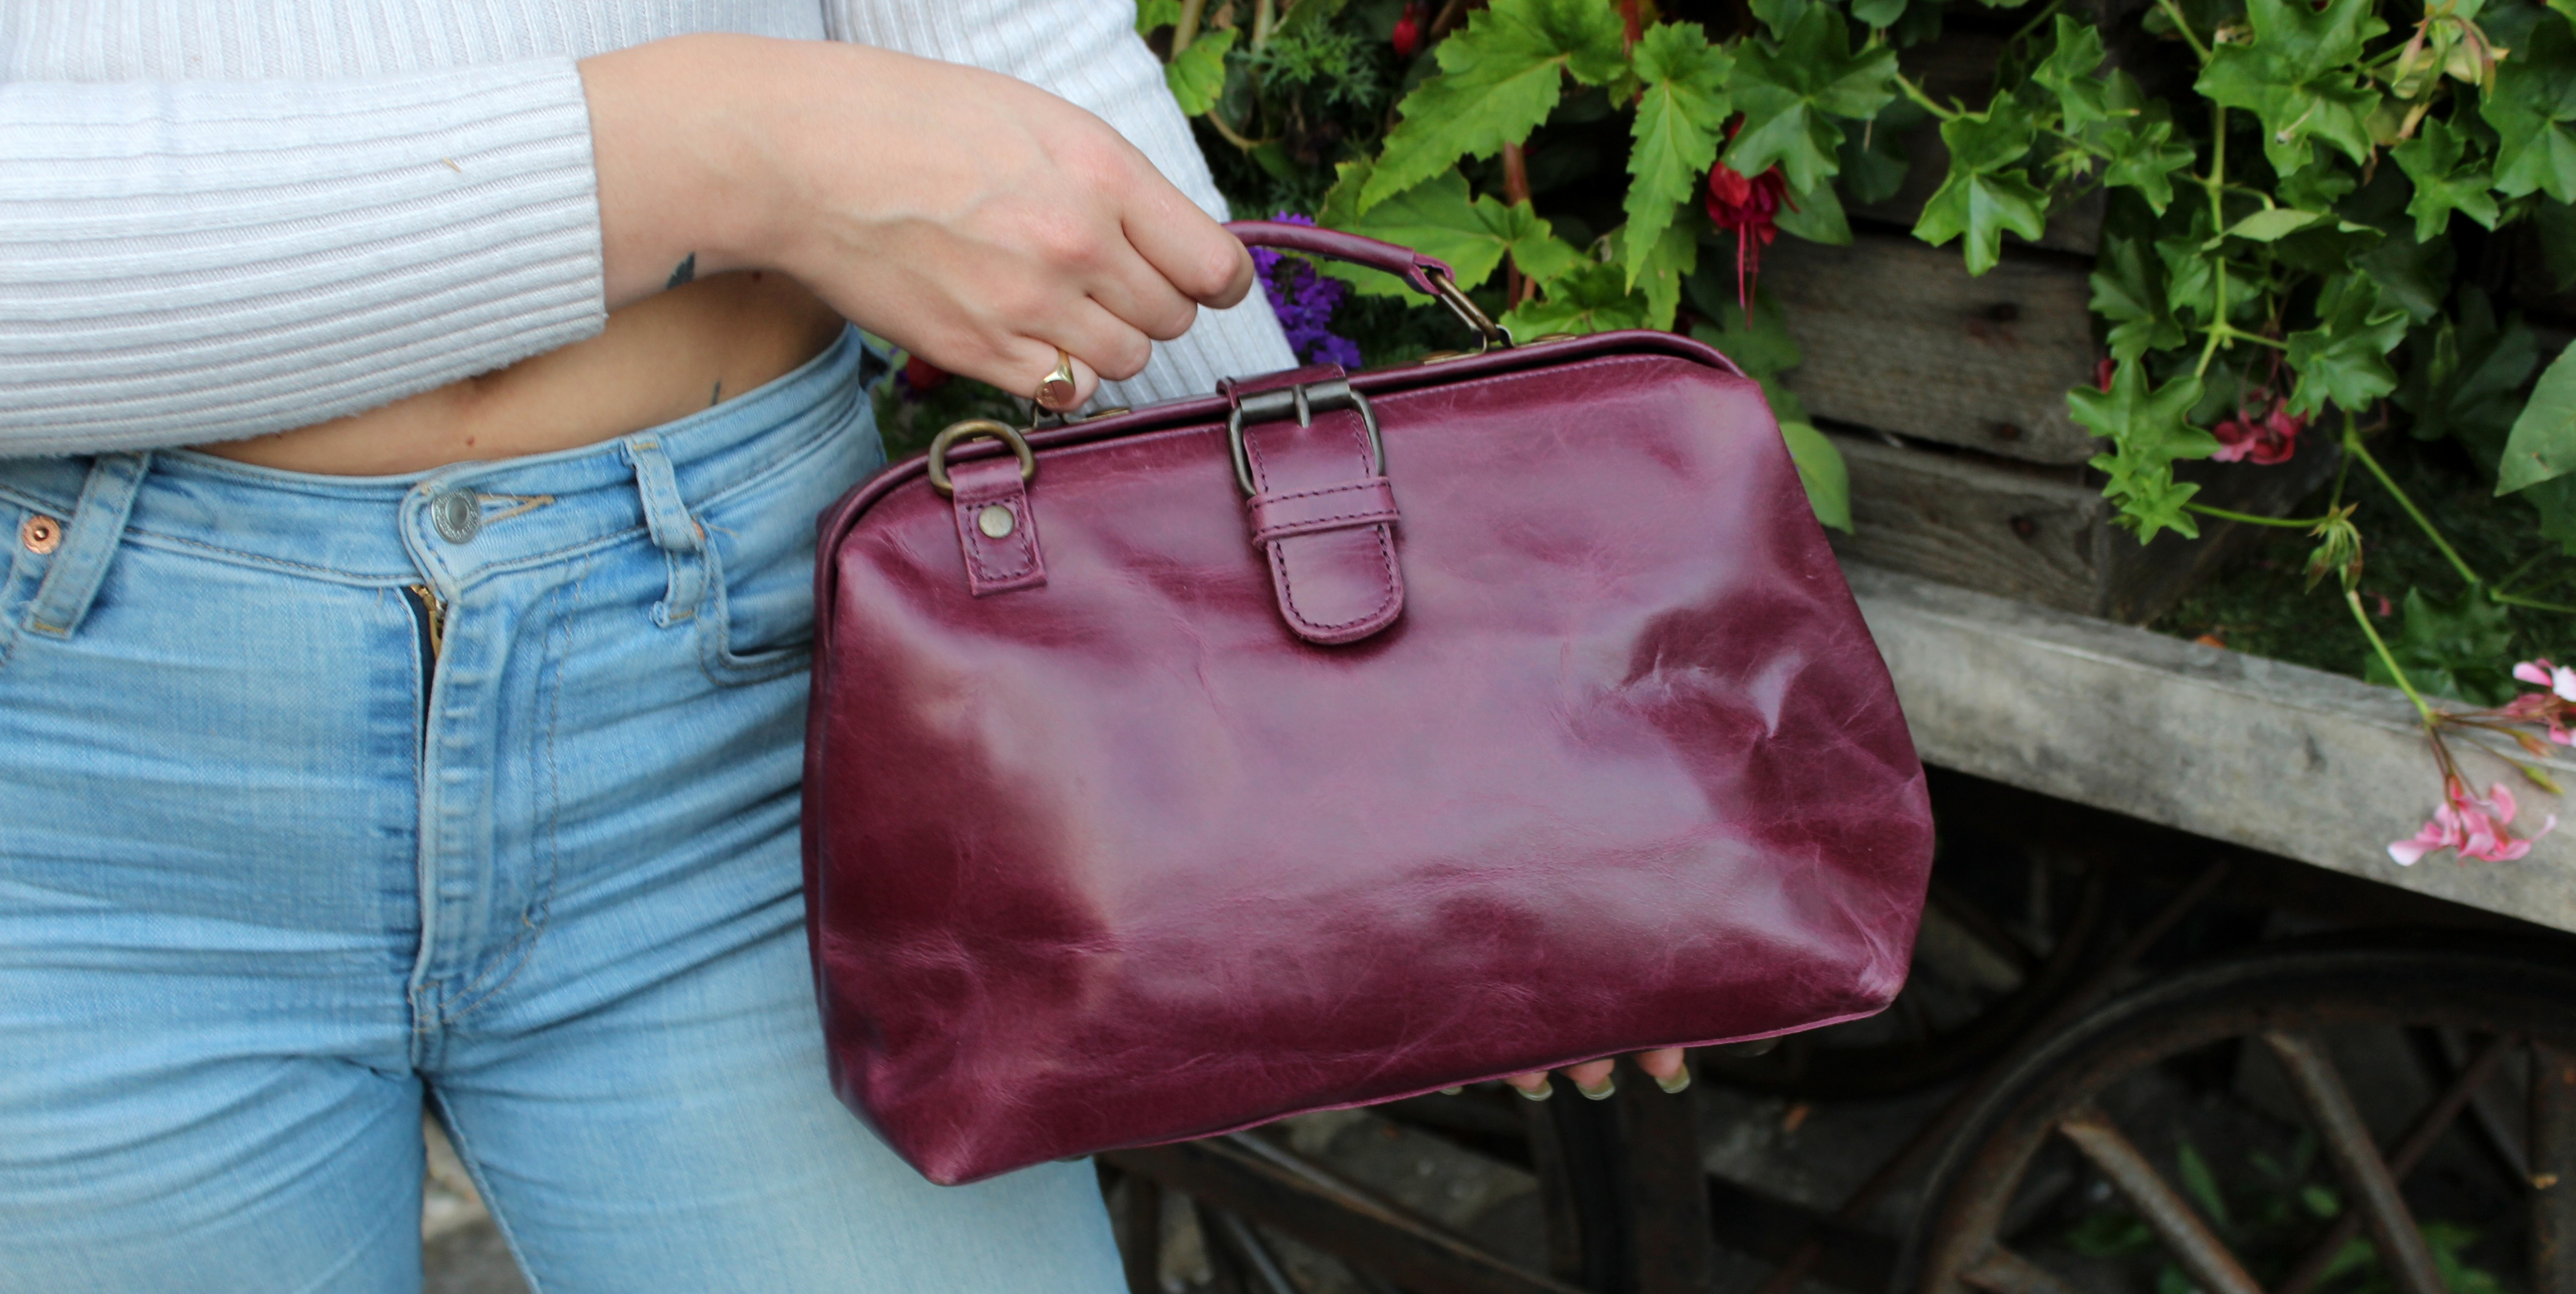 https://www.odilynch.com/doctor-bag-small-purple-leather